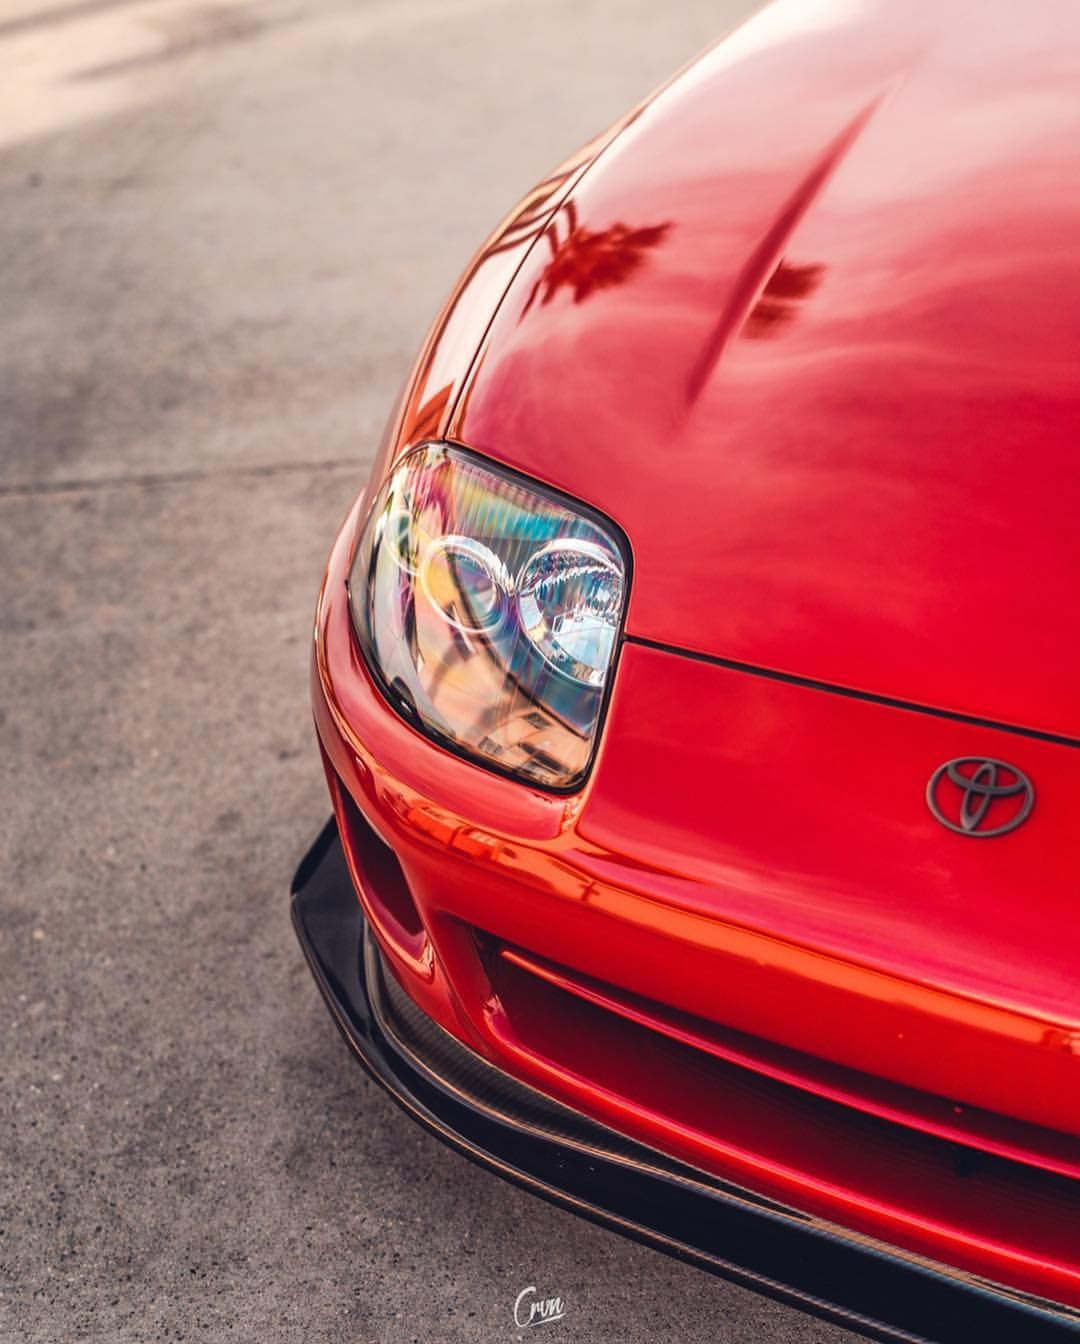 Pin by unknown on Toyota supra | Tuner cars, Toyota supra